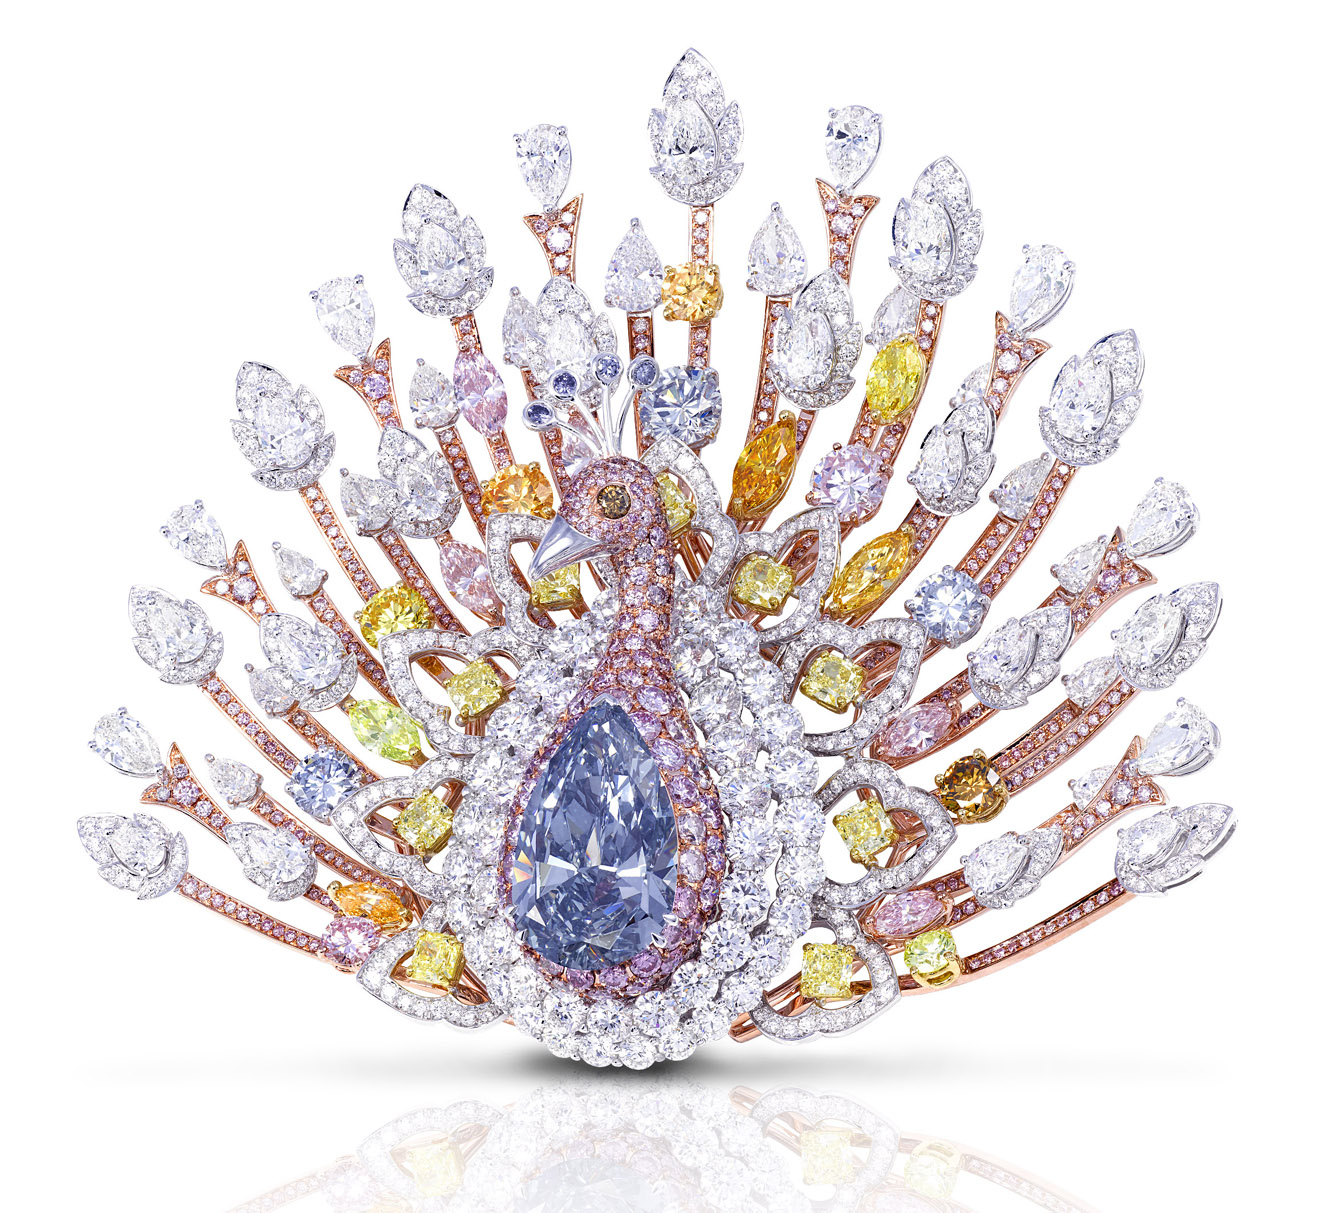 Peacock brooch by Graff Diamonds with white, yellow, pink and a 20.02 cts blue diamond